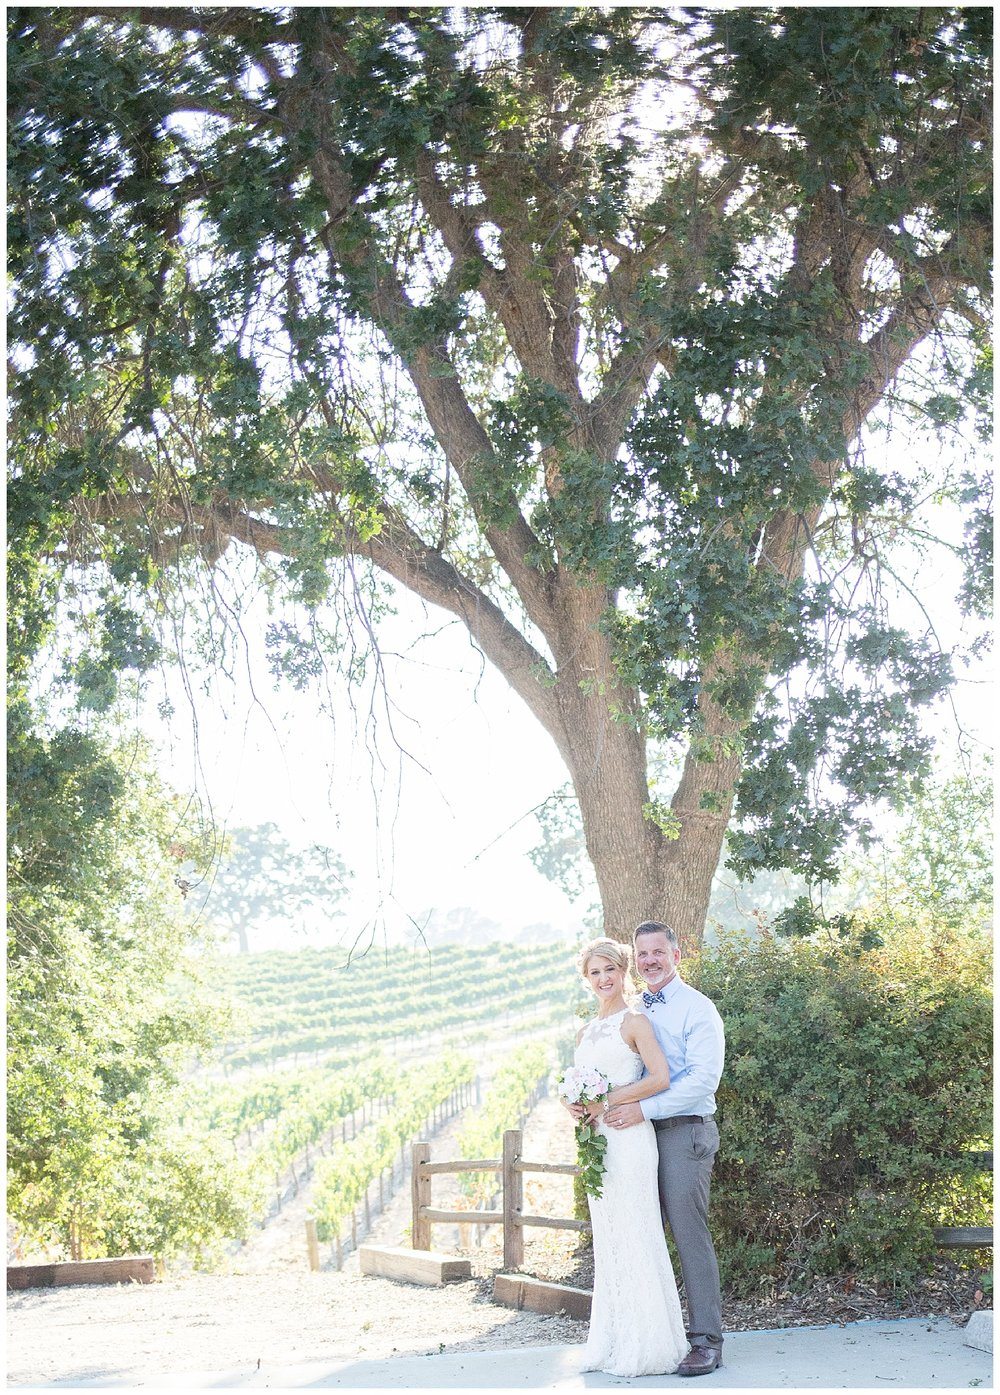 Jill+Bret | Paso Robles winery elopement | Renoda Campbell Photography_09.jpg